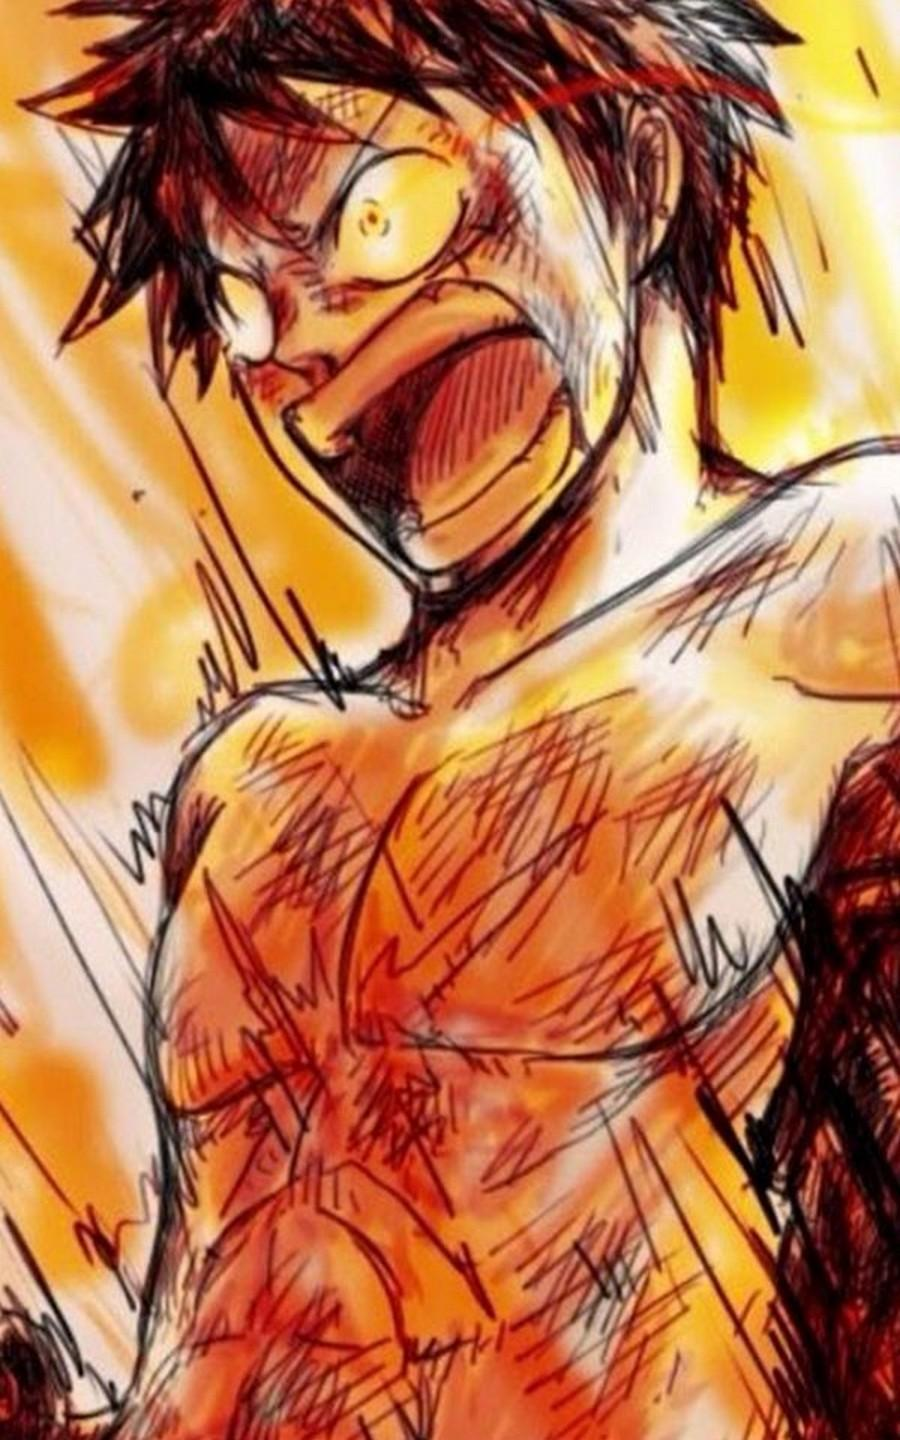 Monkey D Luffy Wallpapers Fansart For Android Apk Download